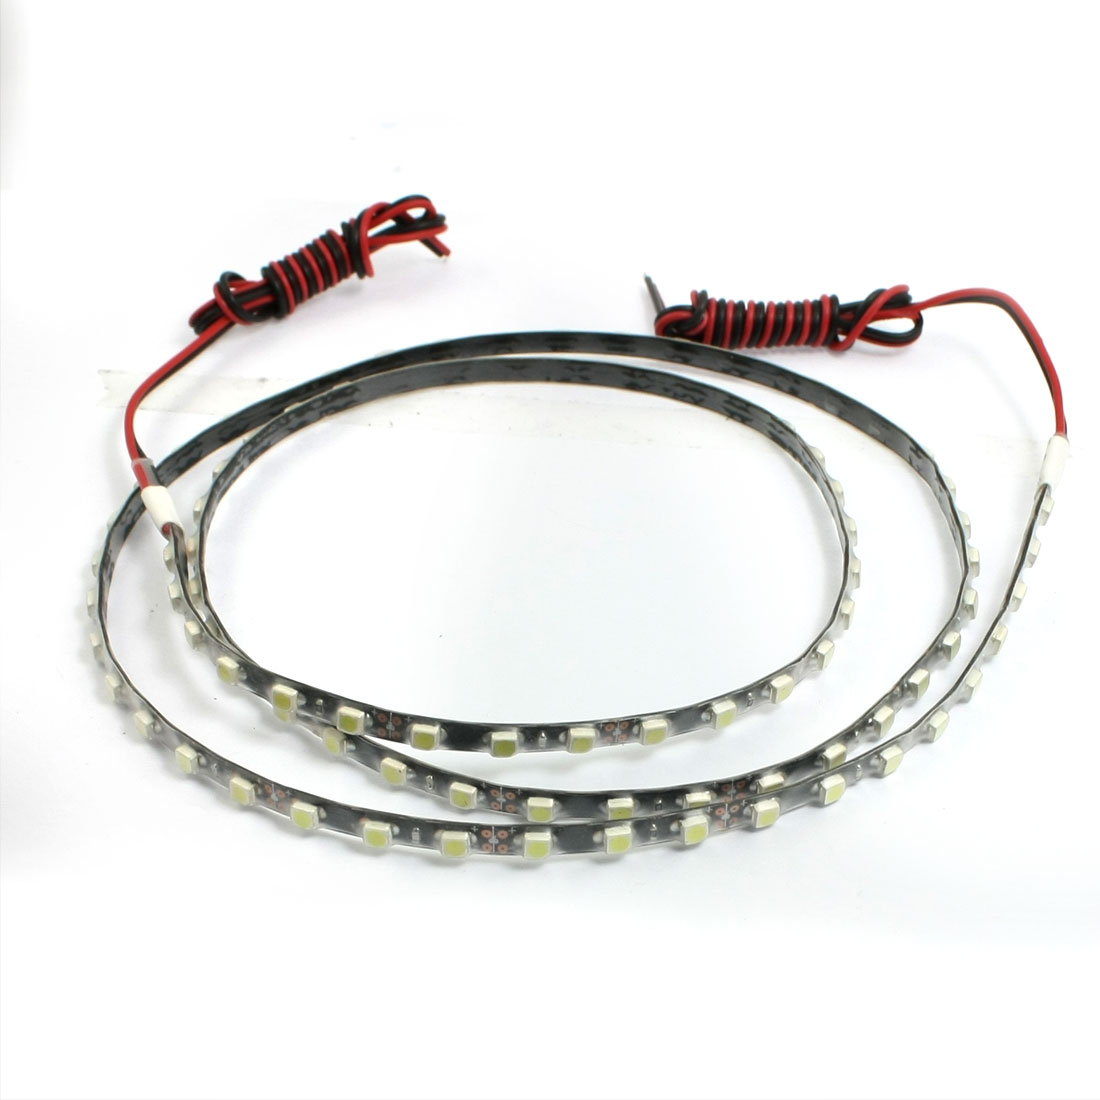 Truck Car Boat White 90 1210 SMD LED Flexible Light Strip Bar 90cm DC 12V